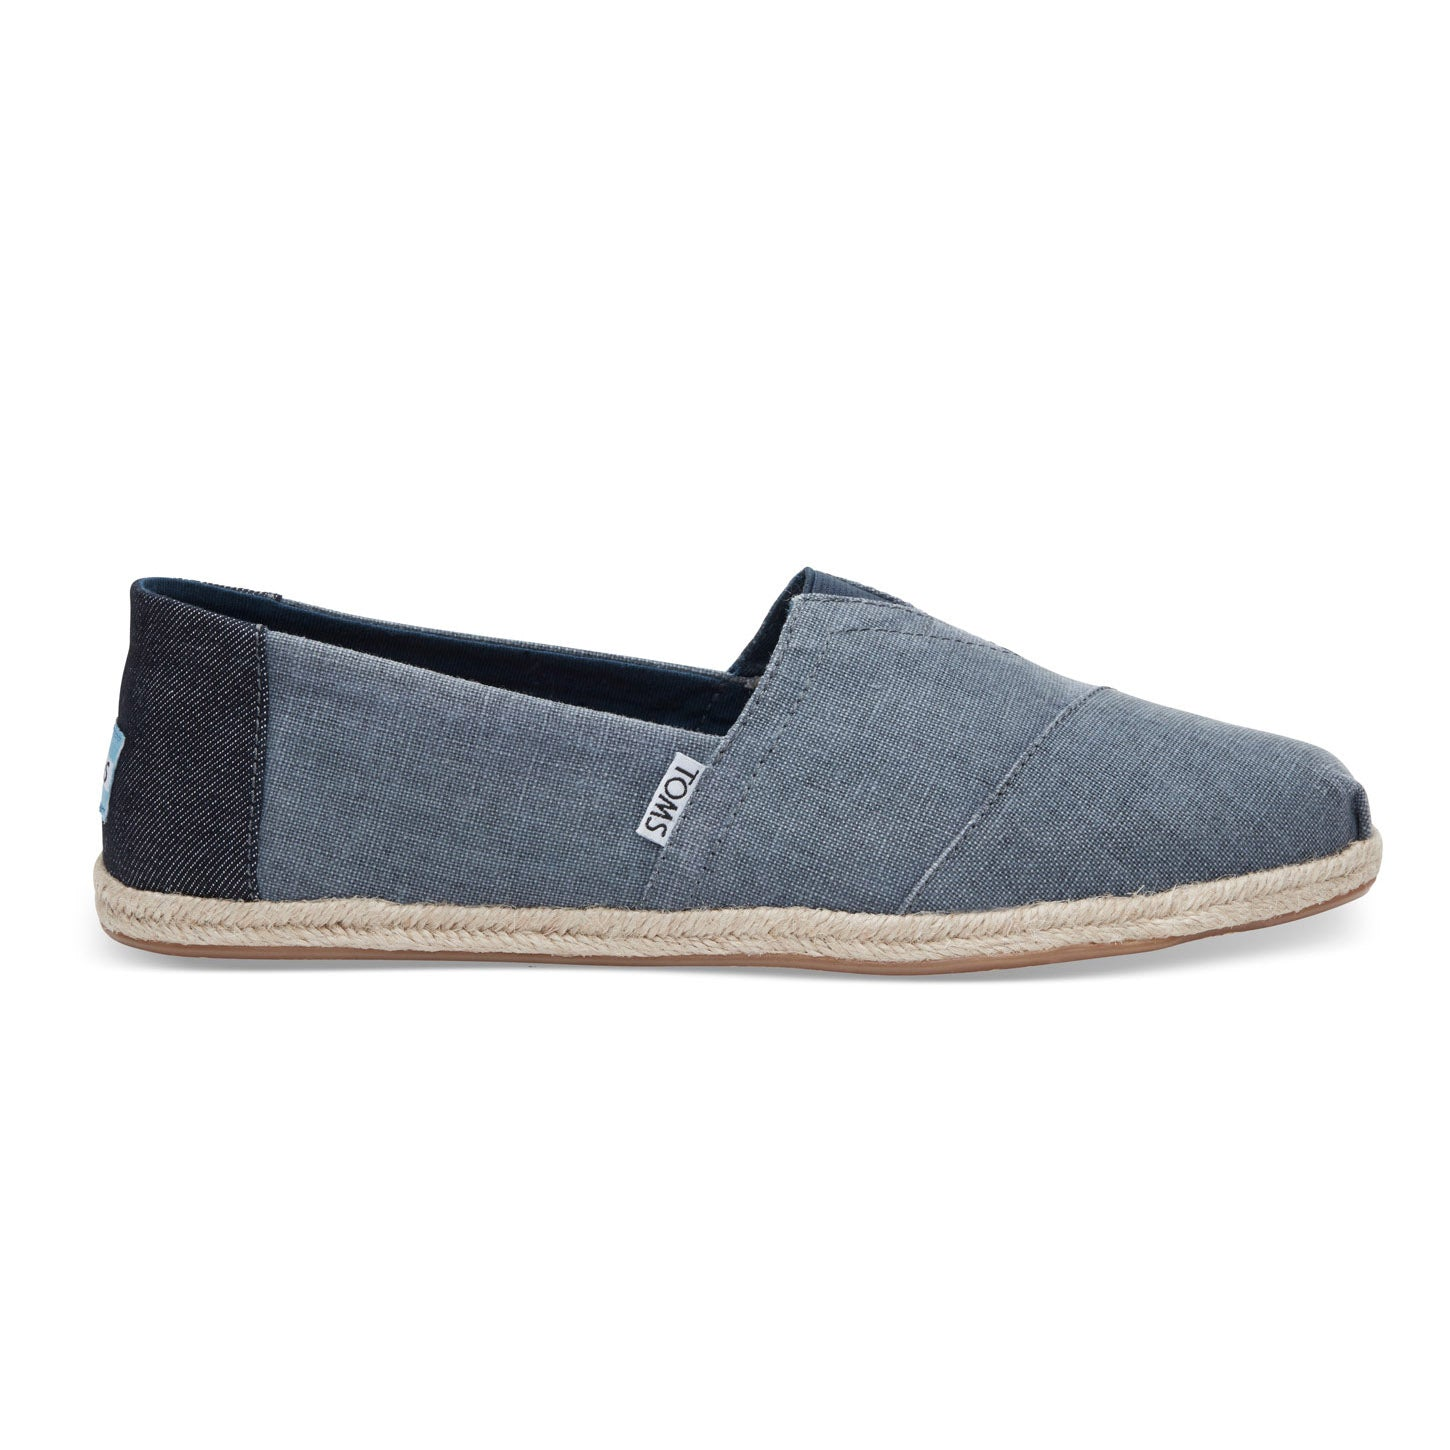 TOMS Mens Coated Linen Rope Sole Classics Deep Ocean Espadrilles